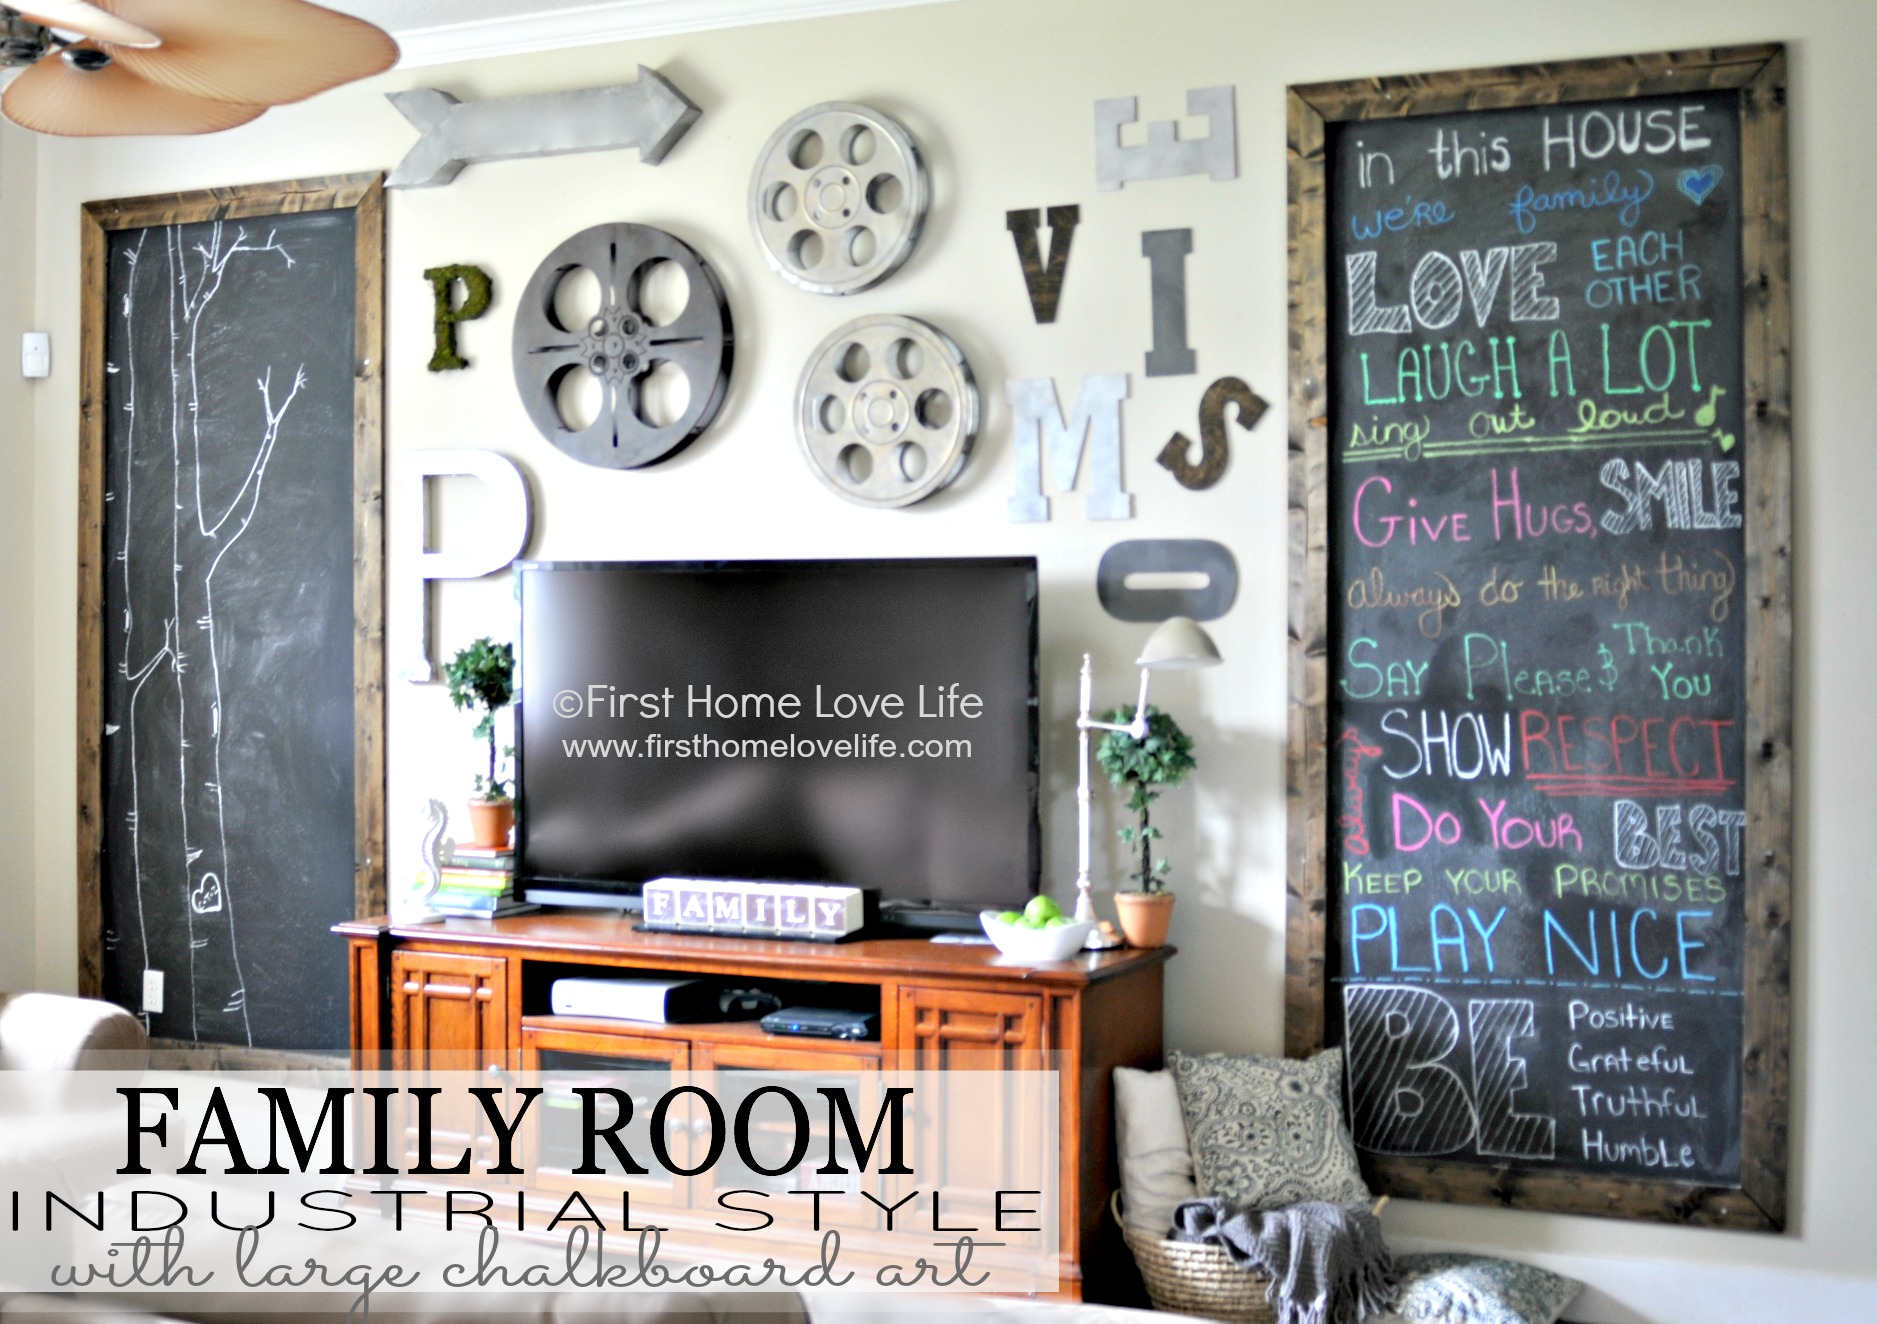 Finest Industrial Style Family Room Gallery Wall with Chalkboard Art  JC86